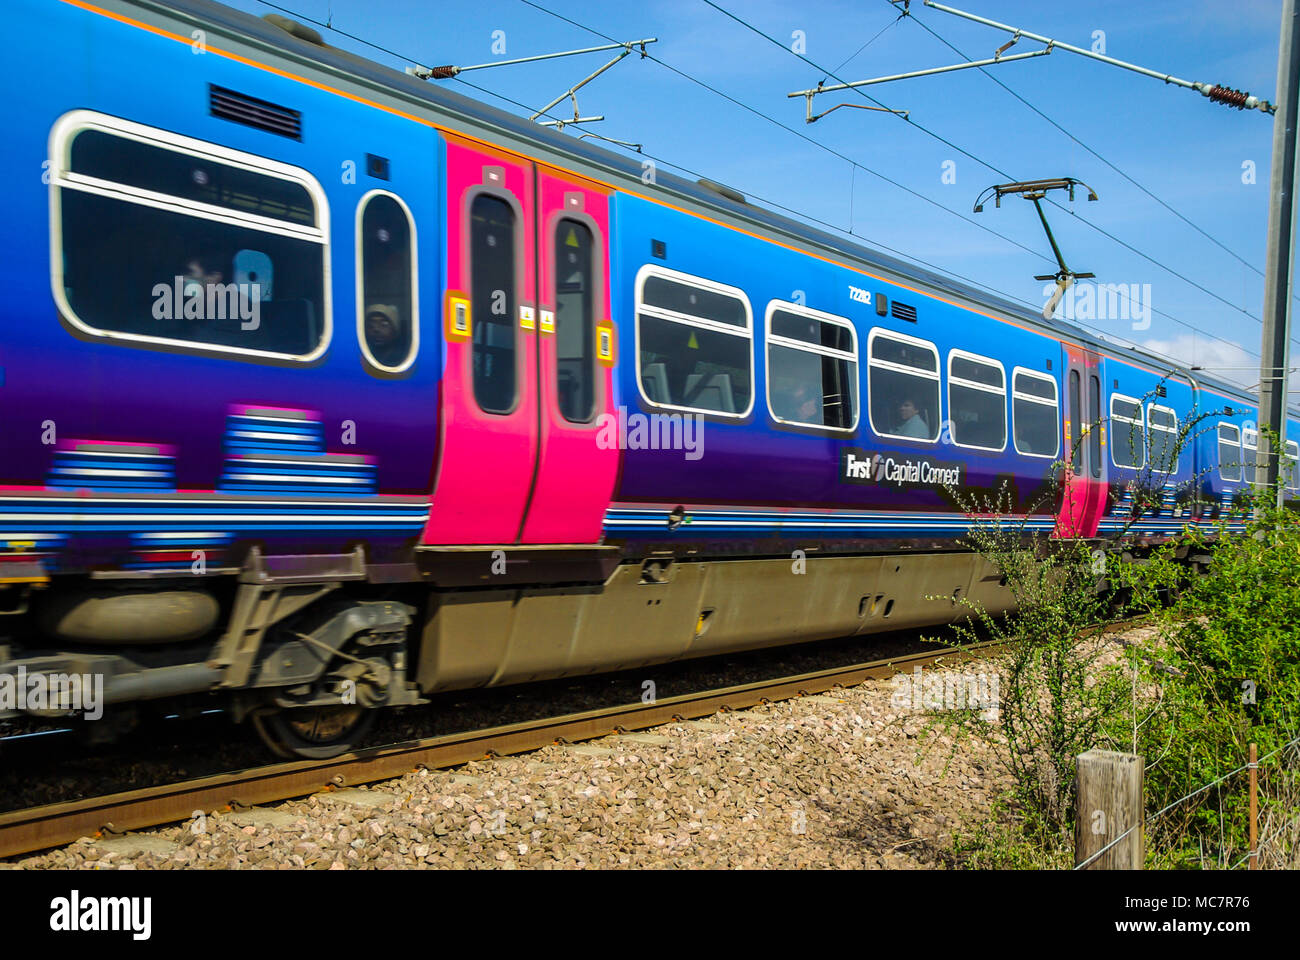 First Capital Connect Class 365 railway train travelling at speed. Carriage with passengers. Electric multiple unit emu overhead wires and pantograph - Stock Image